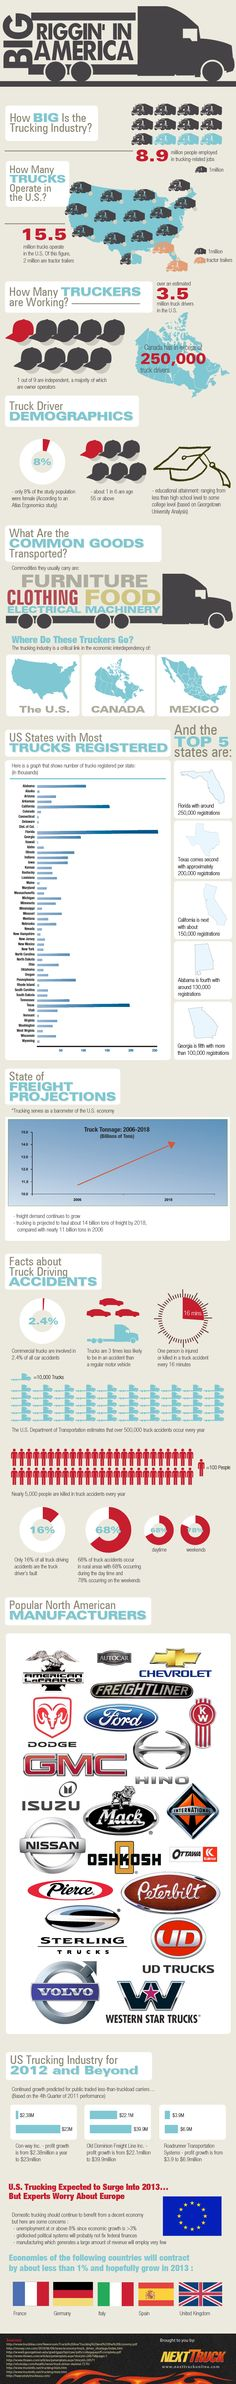 BIG Riggin' In America #infographic